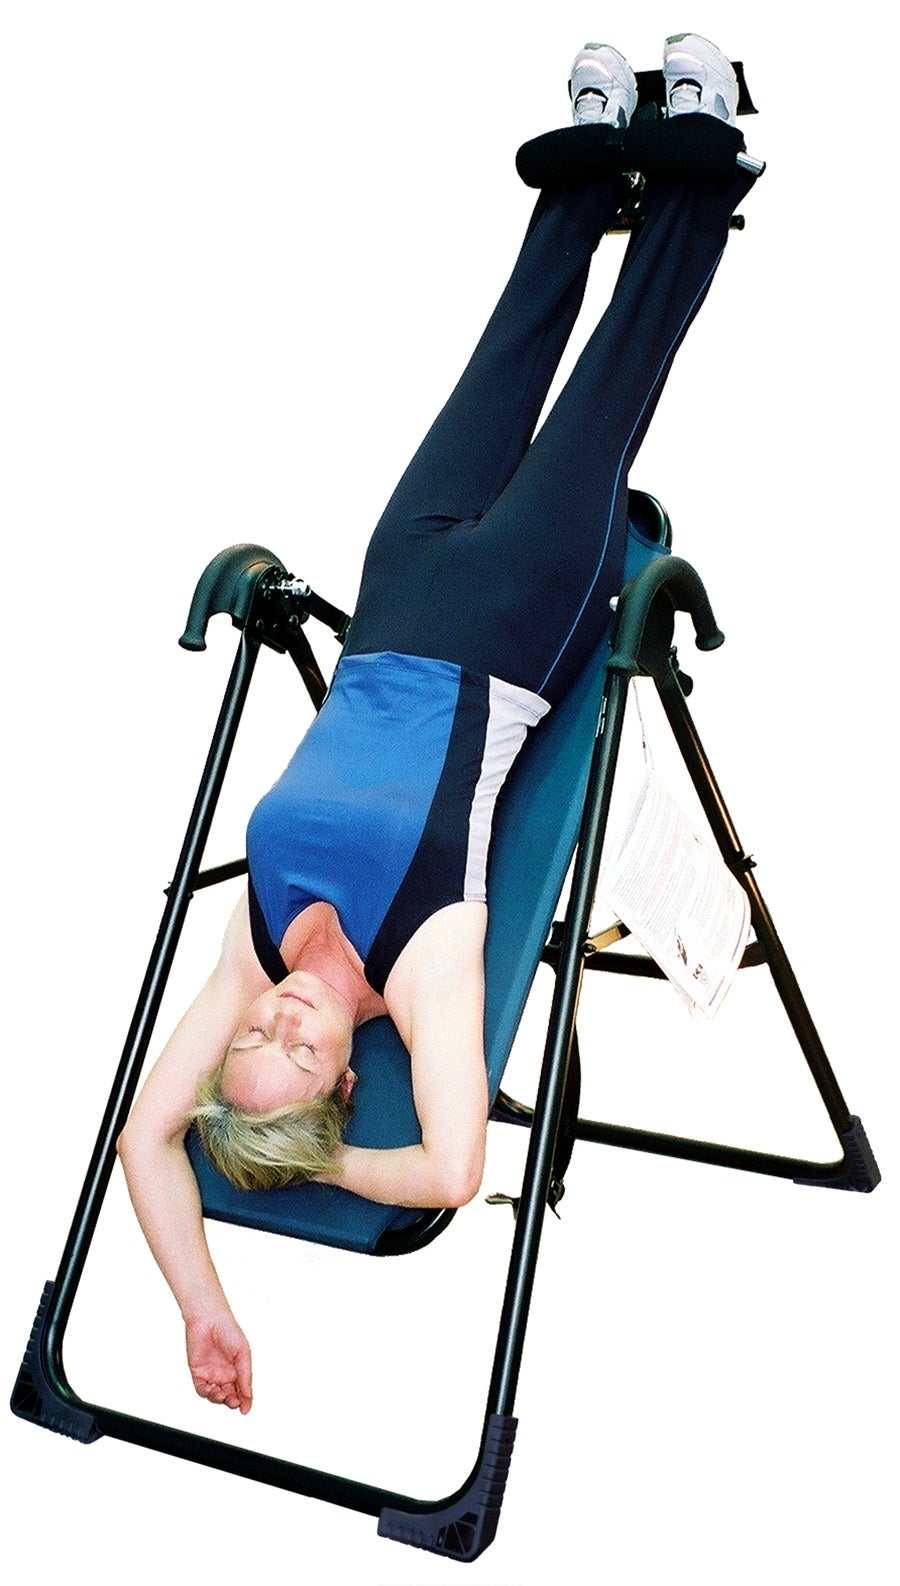 Teeter Hang Up Inversion Table Teeter F7000S Inversion Table - Free Shipping Today - Overstock.com ...